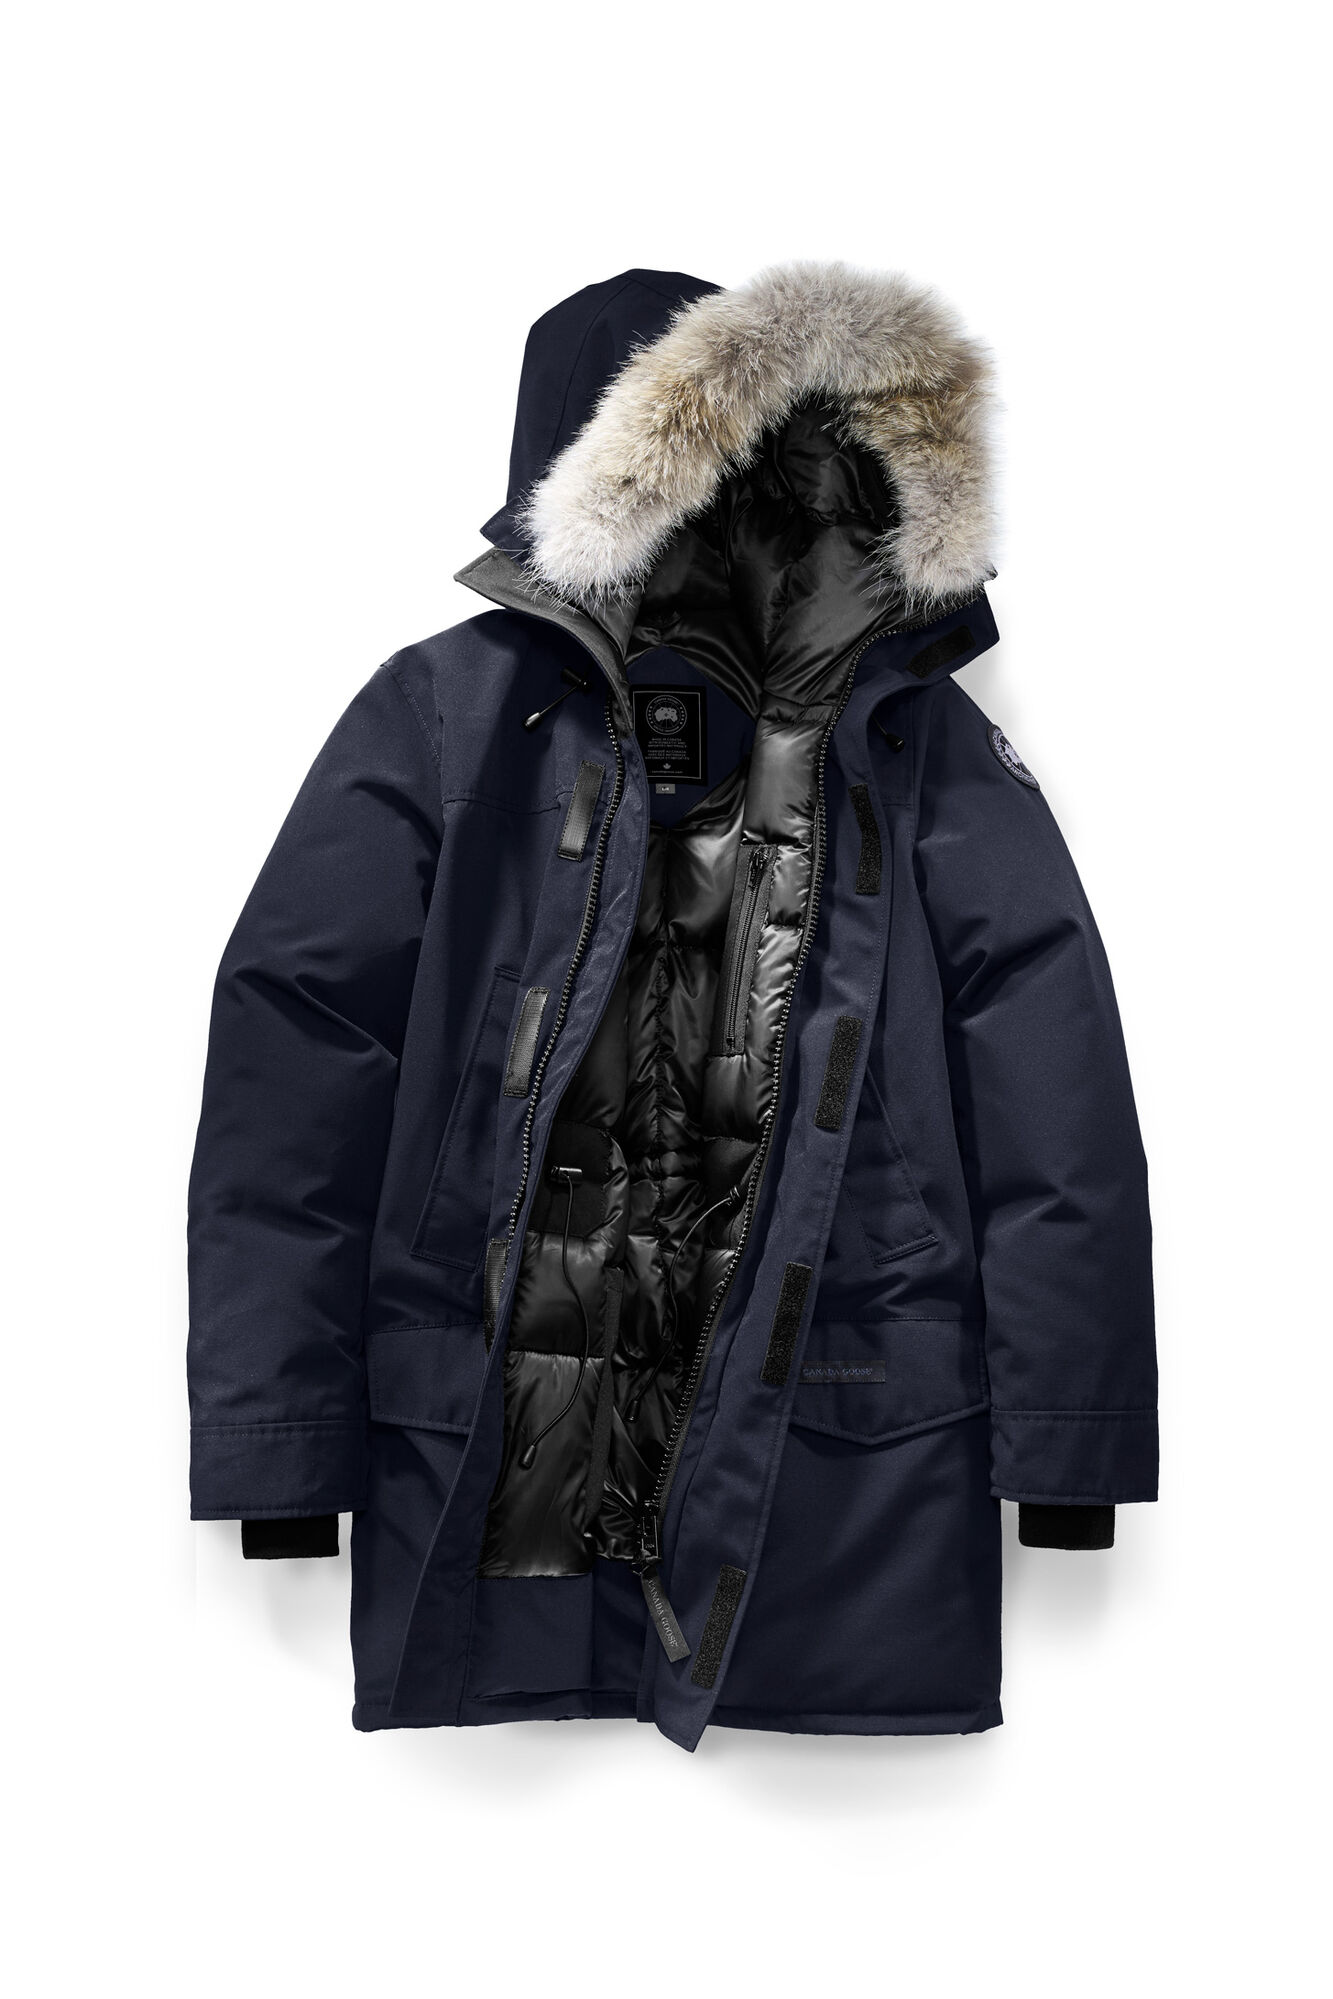 Canada Goose Langford Parka Black Label